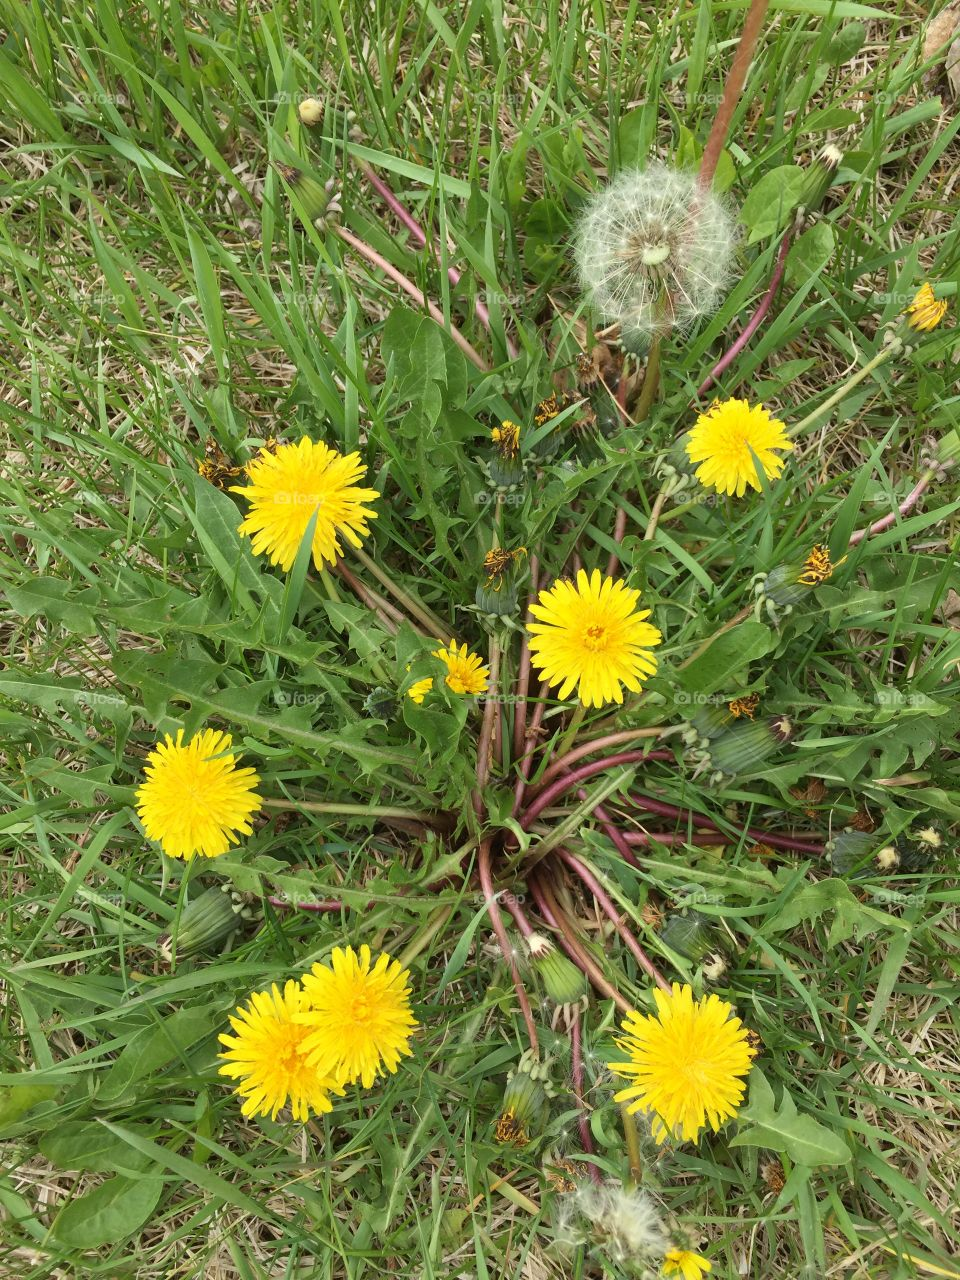 Dandelions and Wishes